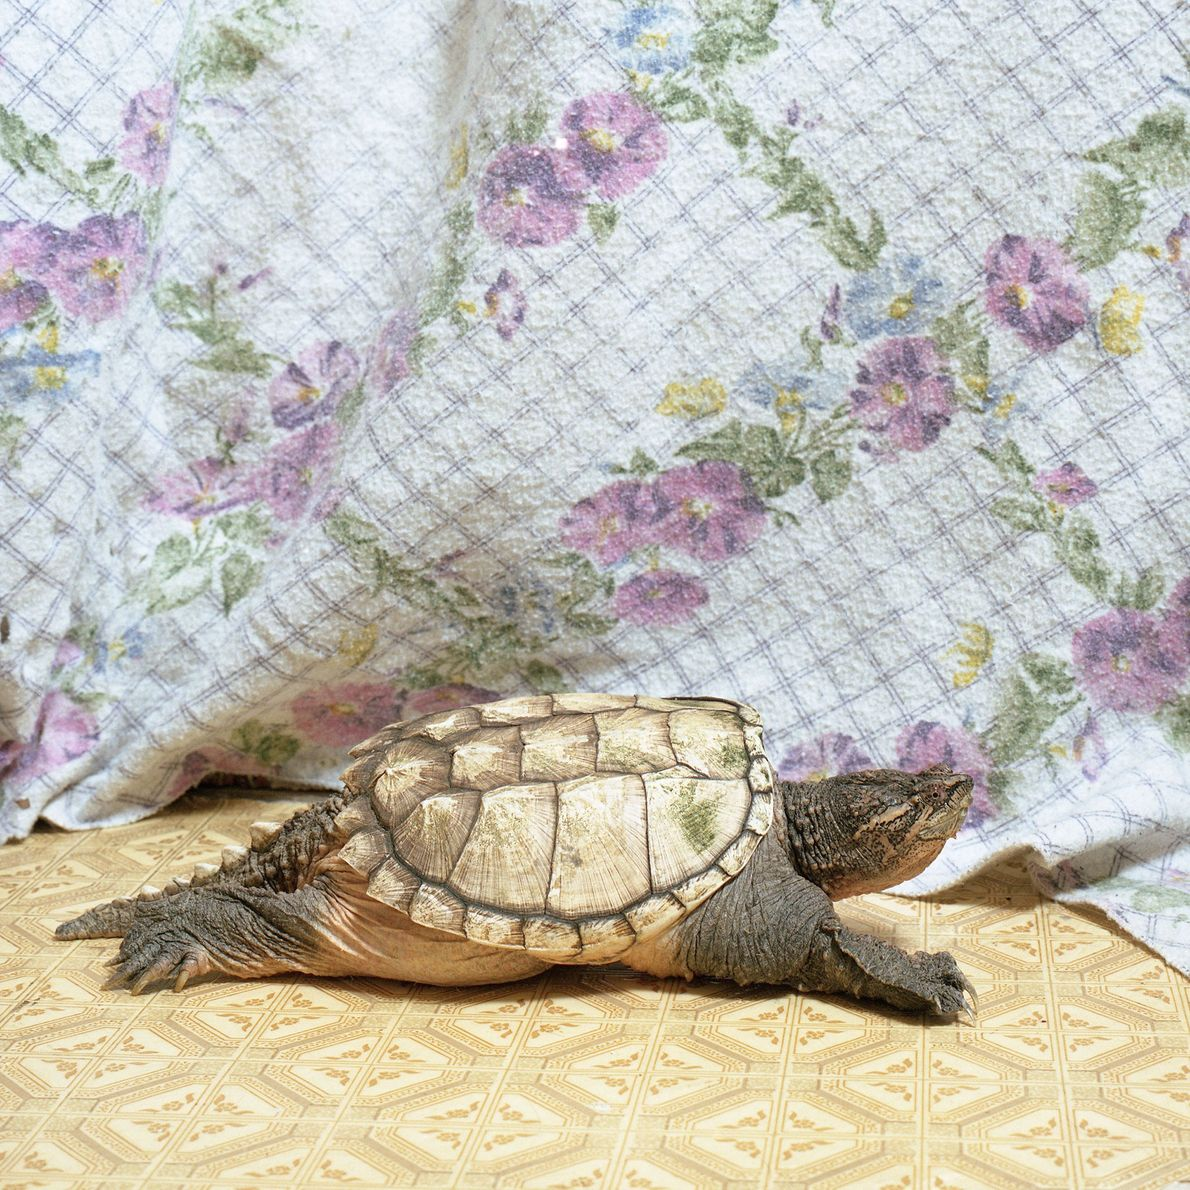 """Turdell the snapping turtle lives in a large tank with a swimming area, """"but we placed ..."""